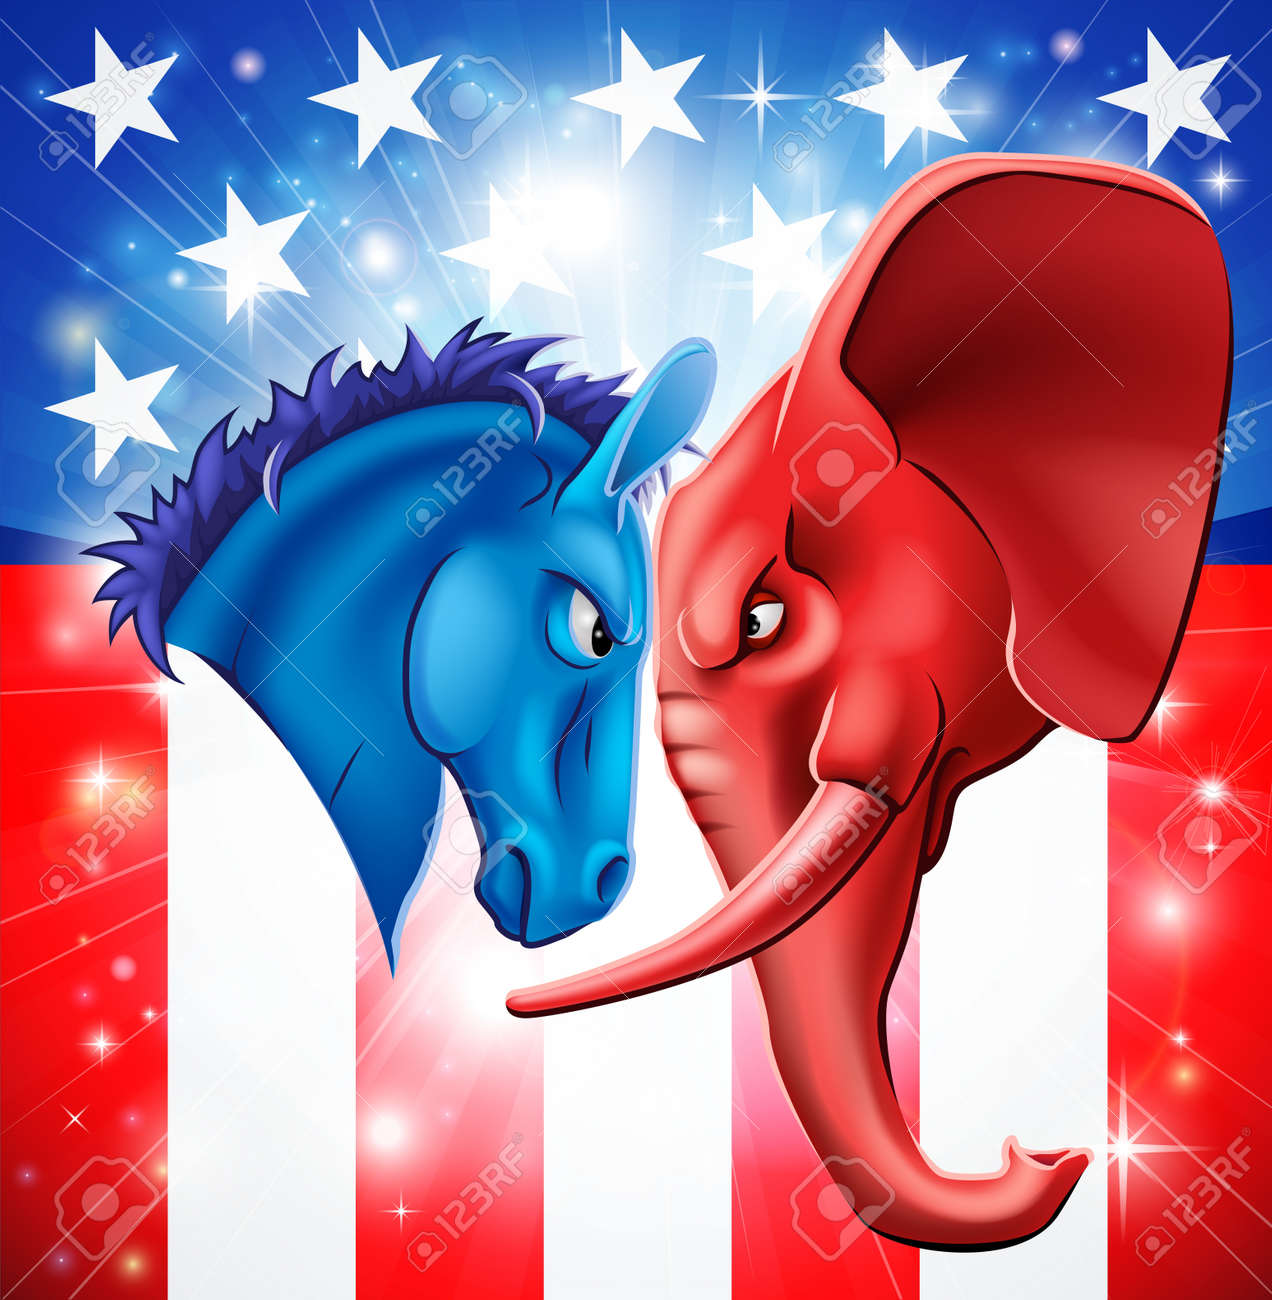 American Politics Concept Illustration Of A Donkey And Elephant